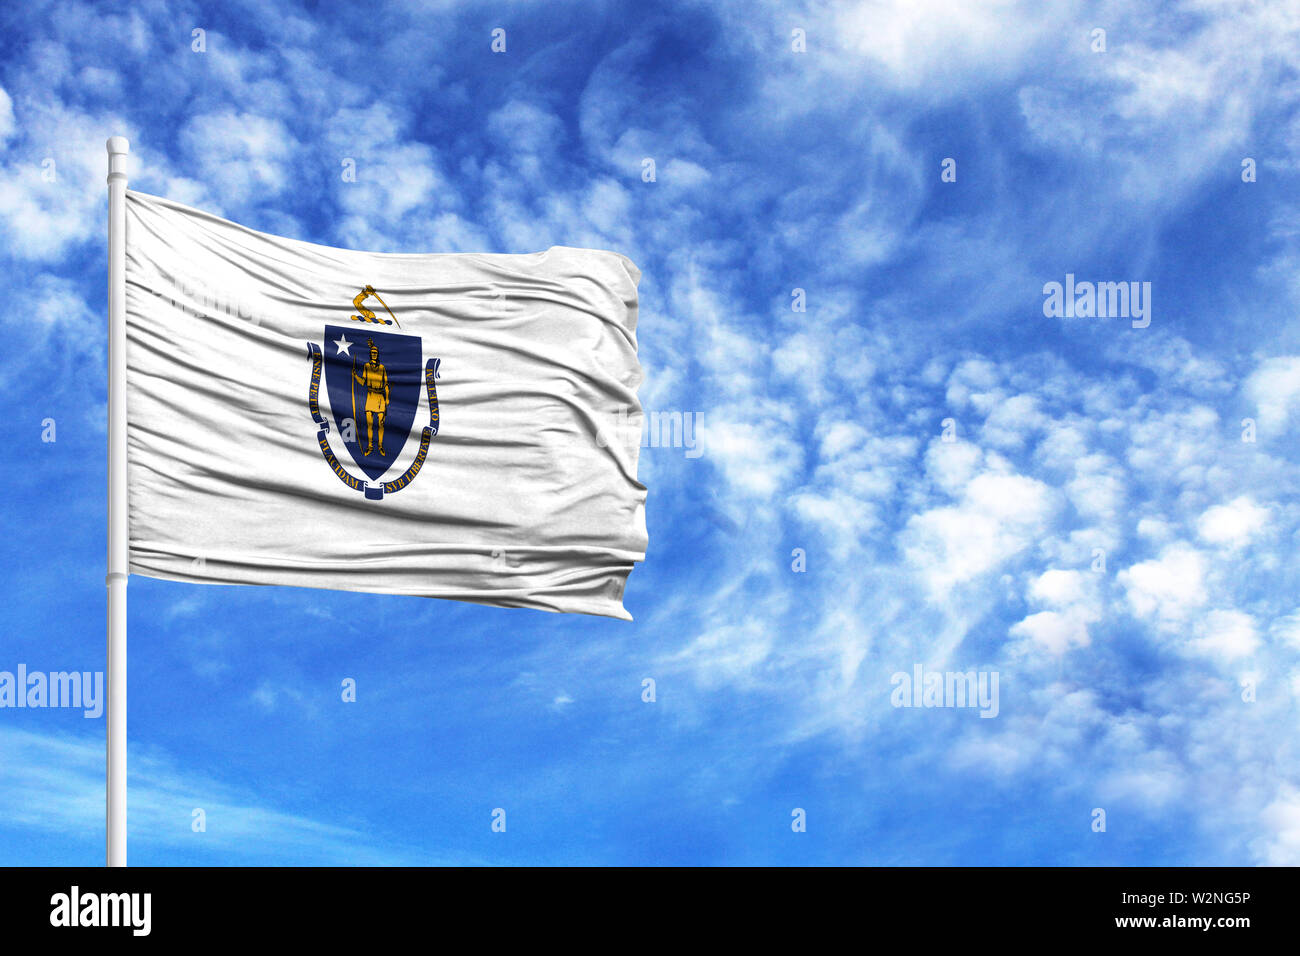 National flag State of Massachusetts on a flagpole in front of blue sky - Stock Image